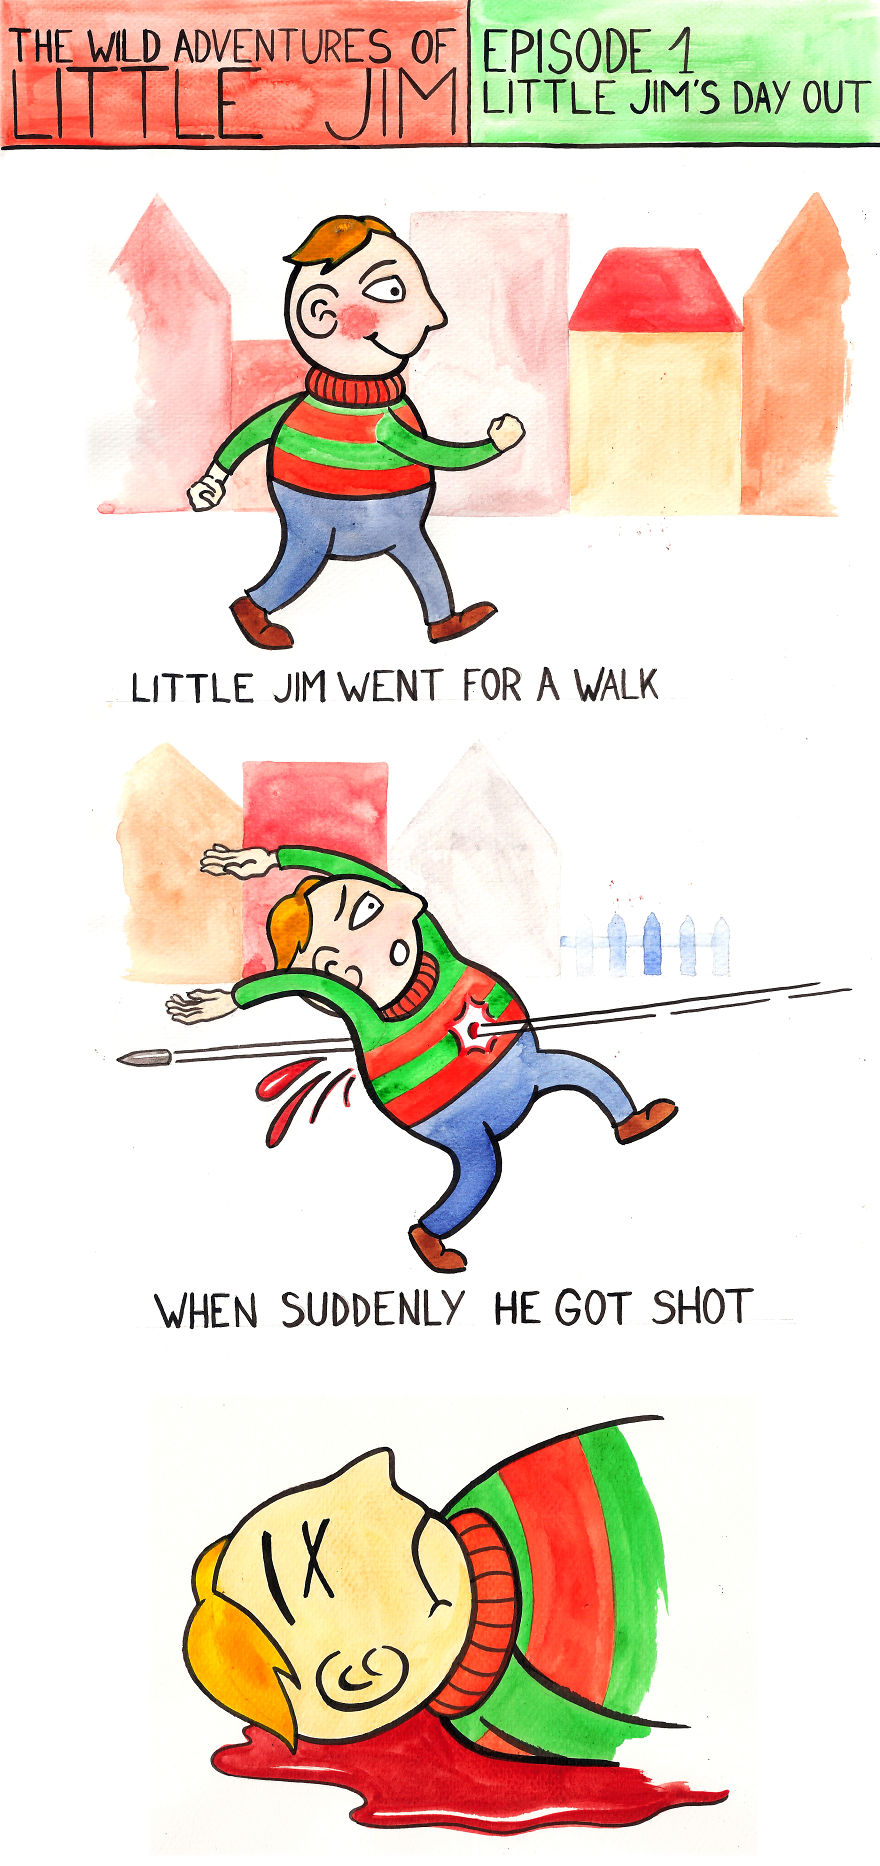 Little Jim's Day Out